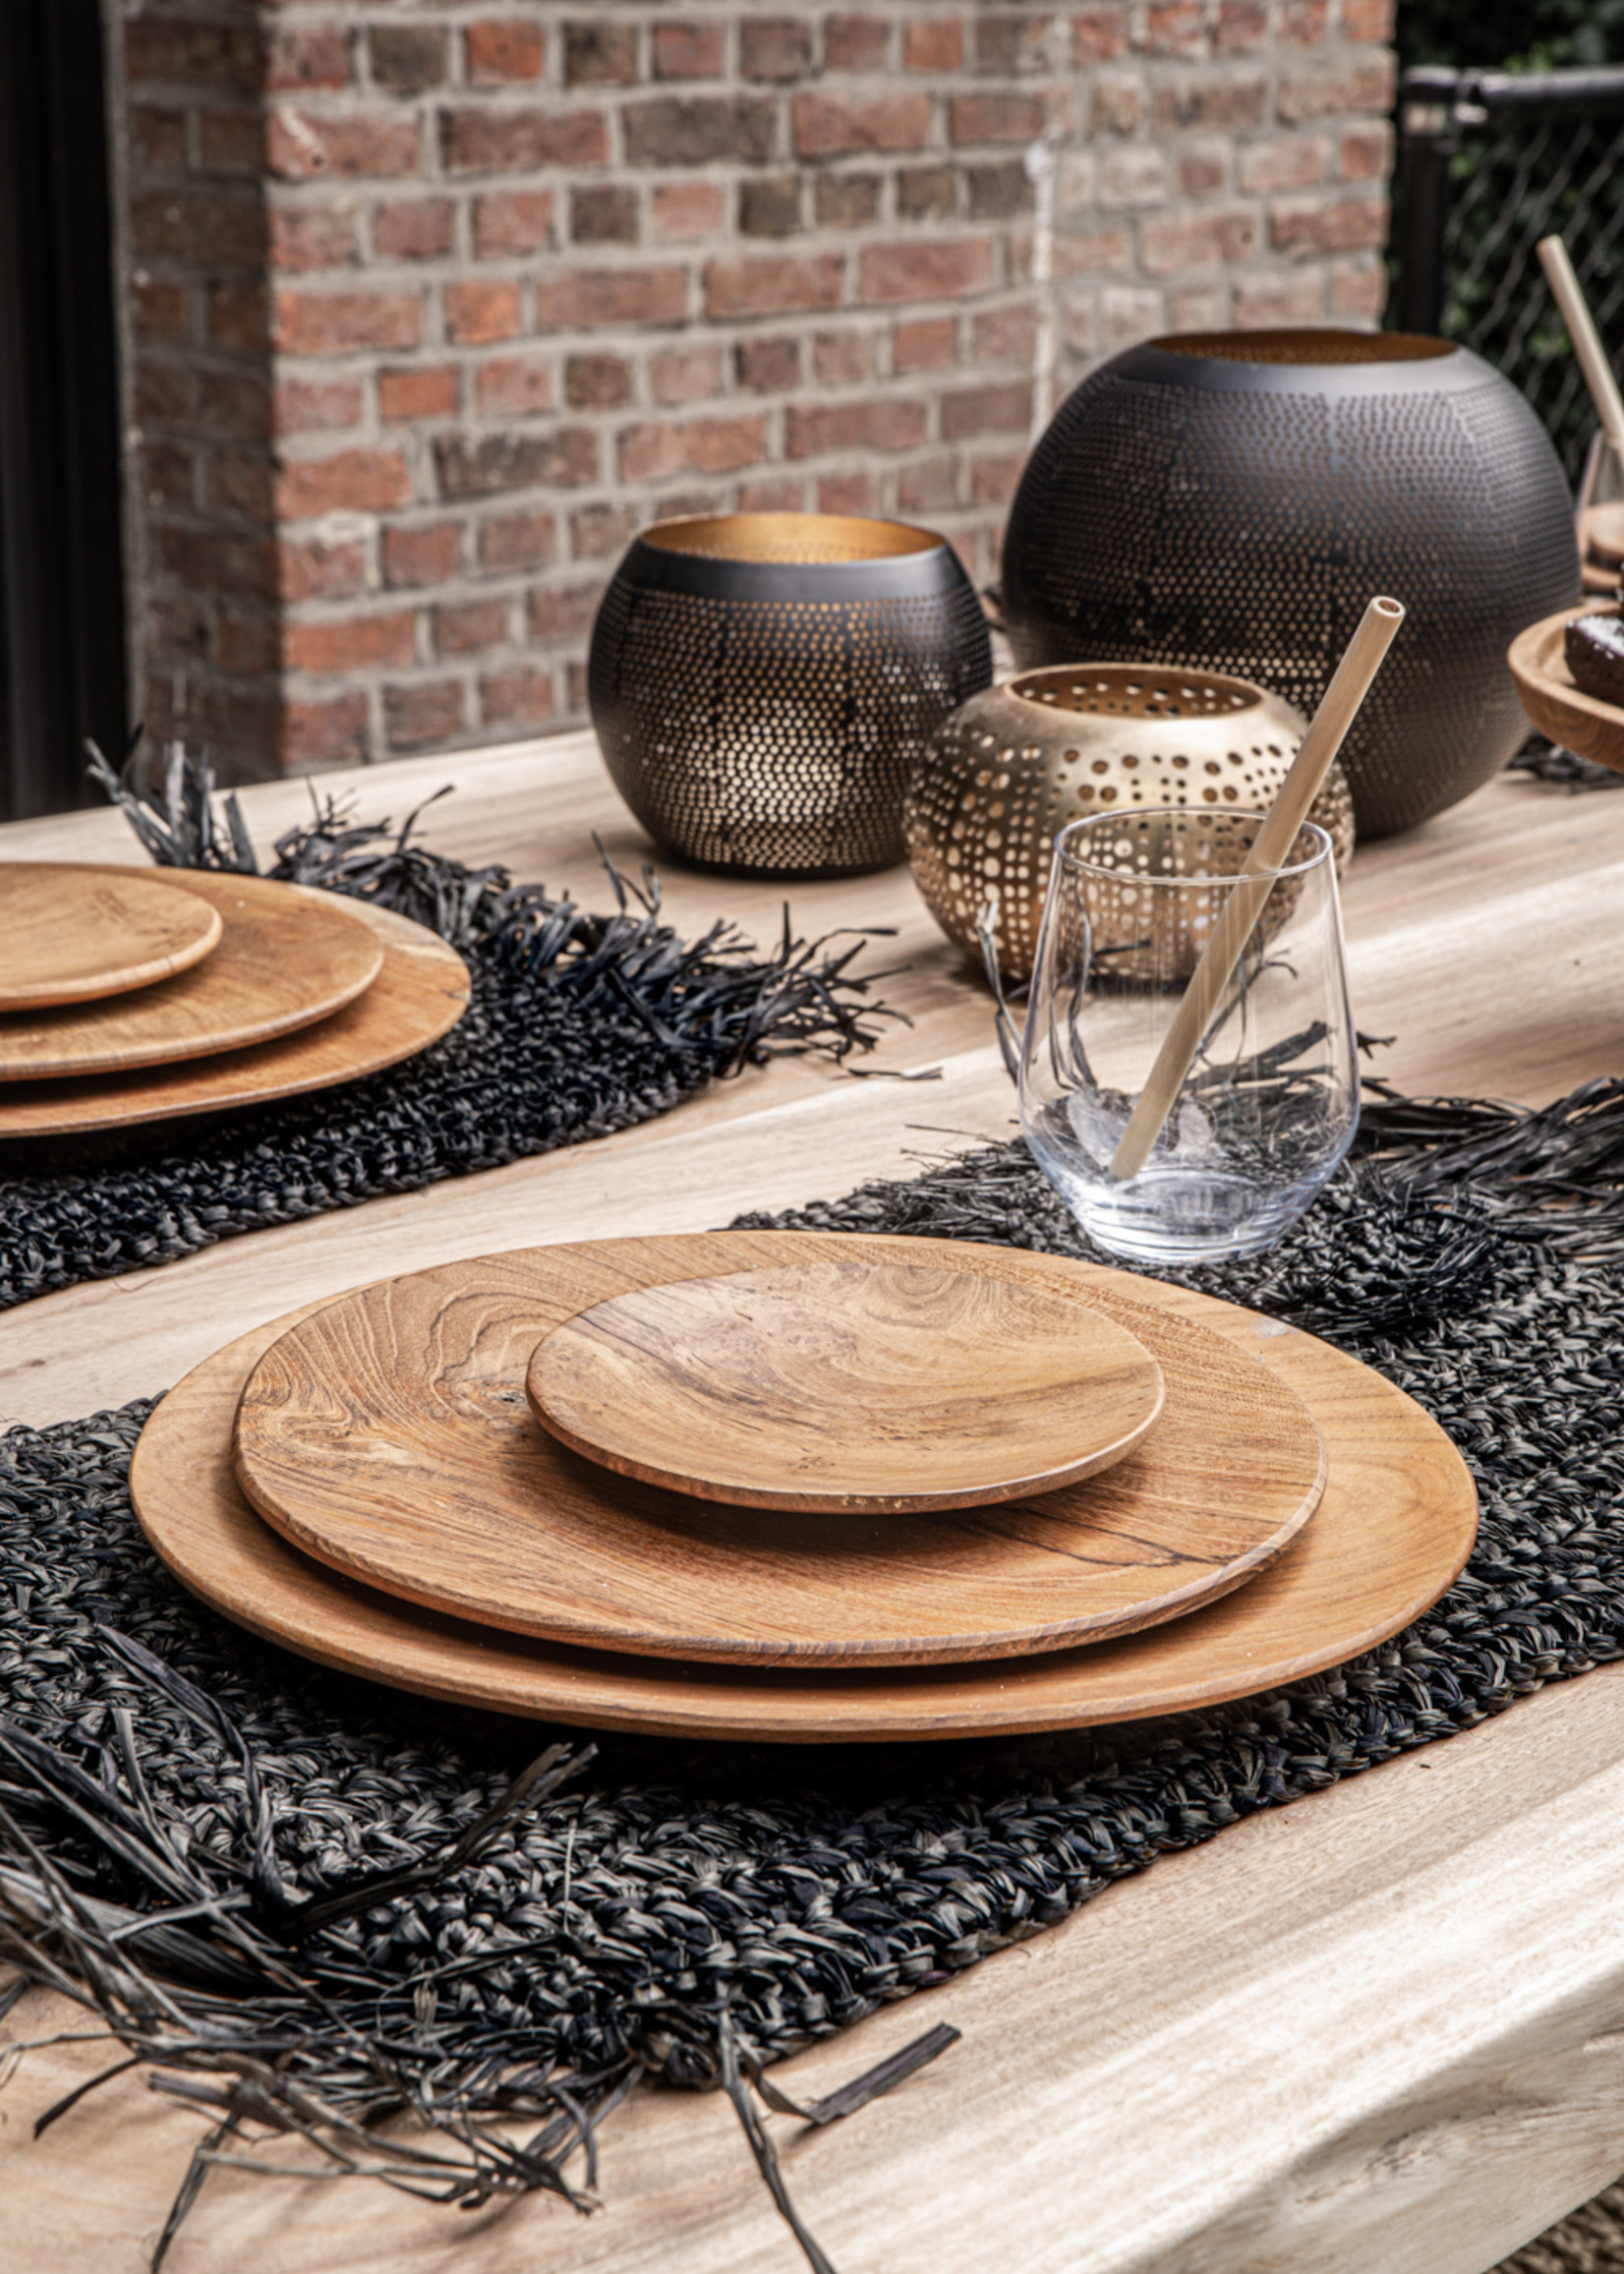 The Teak Root Round Plate - L